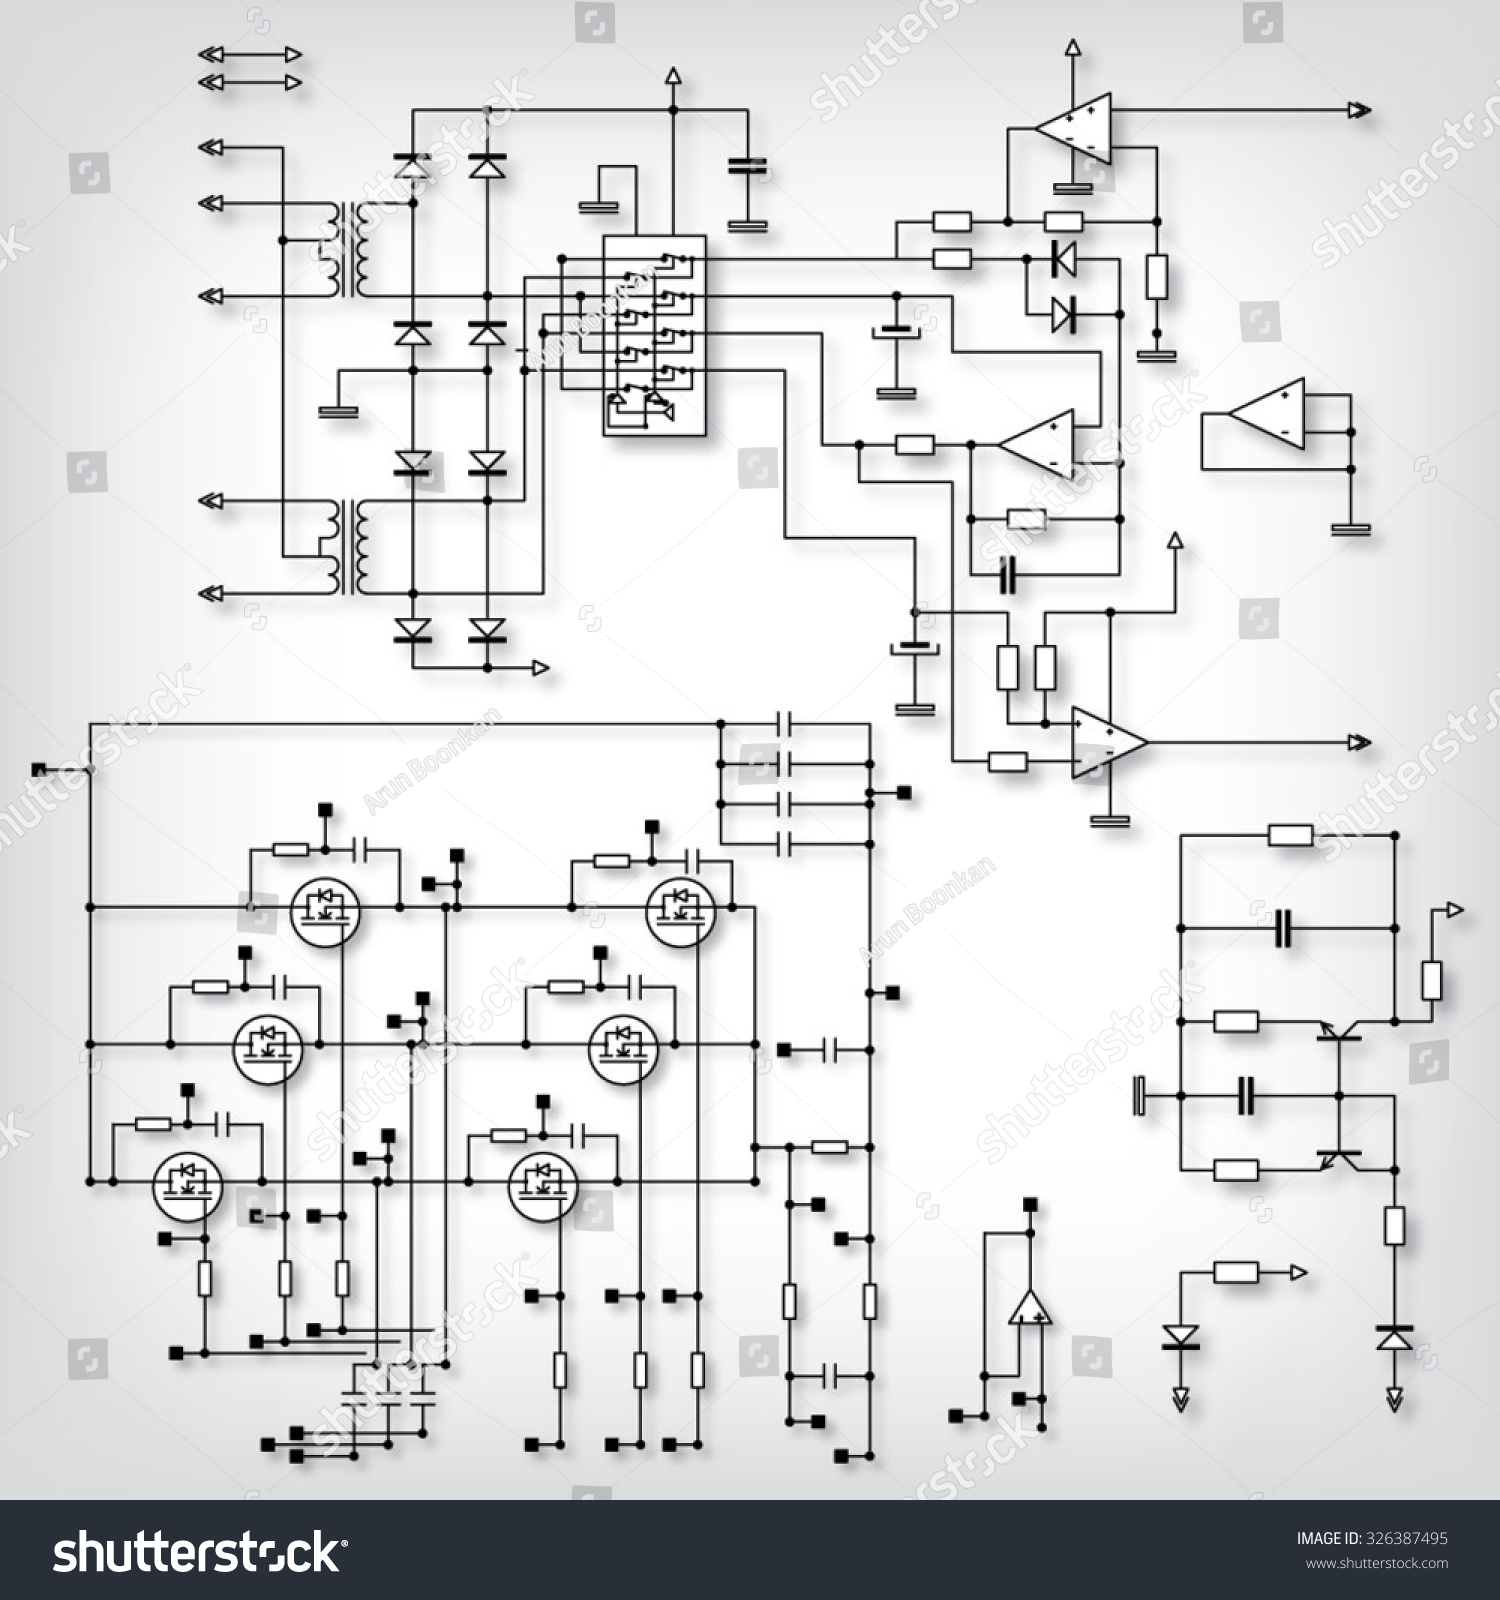 Schematic Diagram Project Electronic Circuit Graphic Stock Vector Of